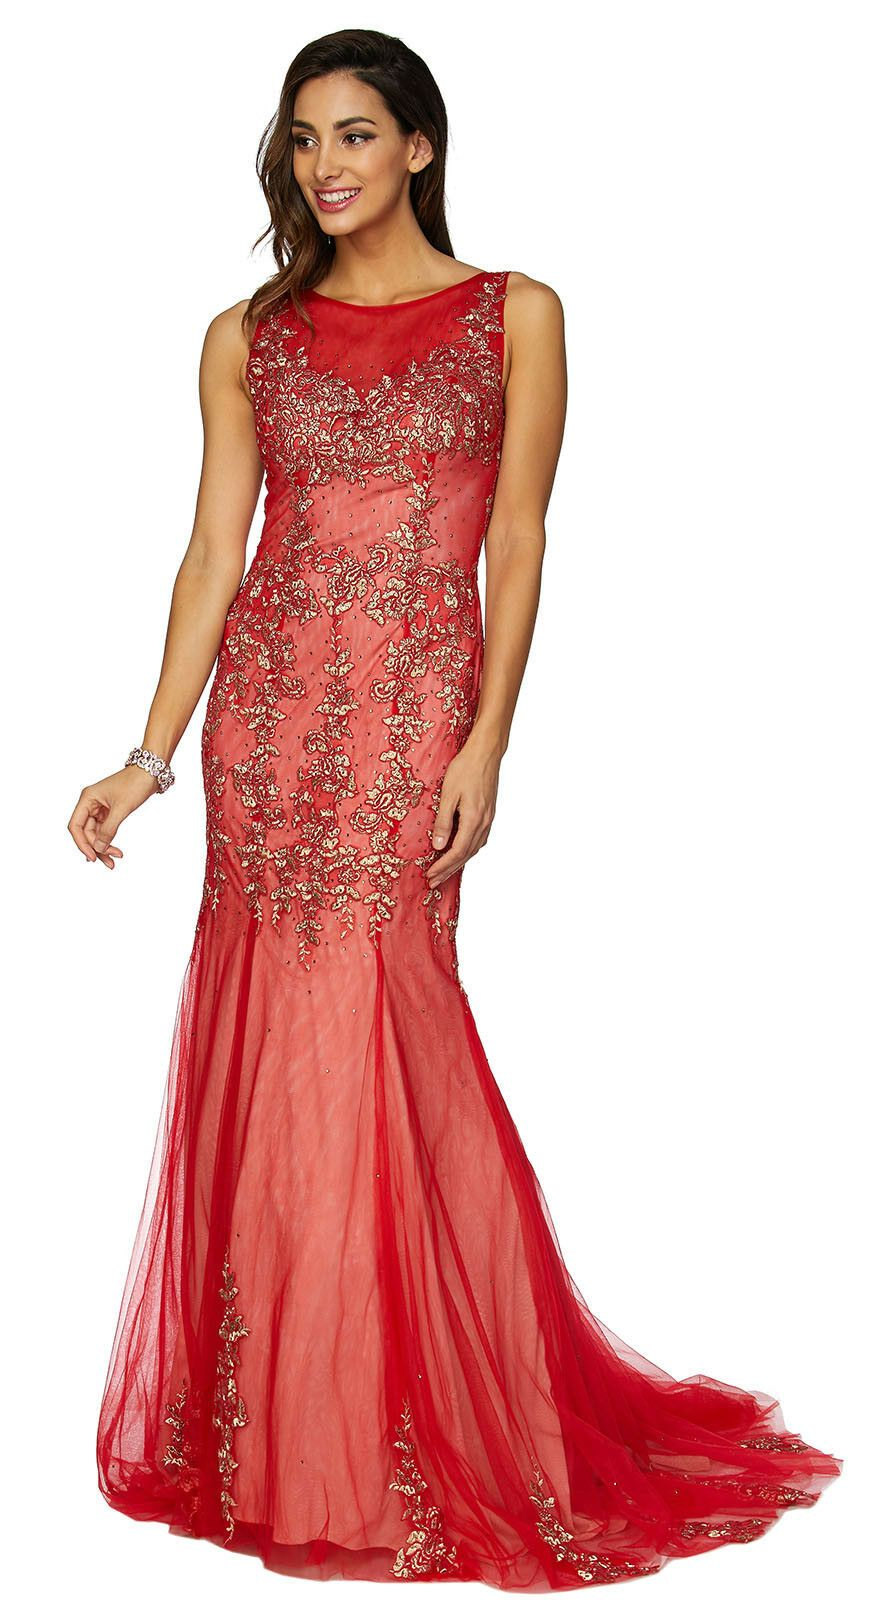 New Red Carpet Stretchy Satin Pageant Special Occasion Formal Evening Prom Dress Red Carpet Dres Mermaid Evening Gown Metallic Prom Dresses Formal Gala Dress [ 1600 x 876 Pixel ]